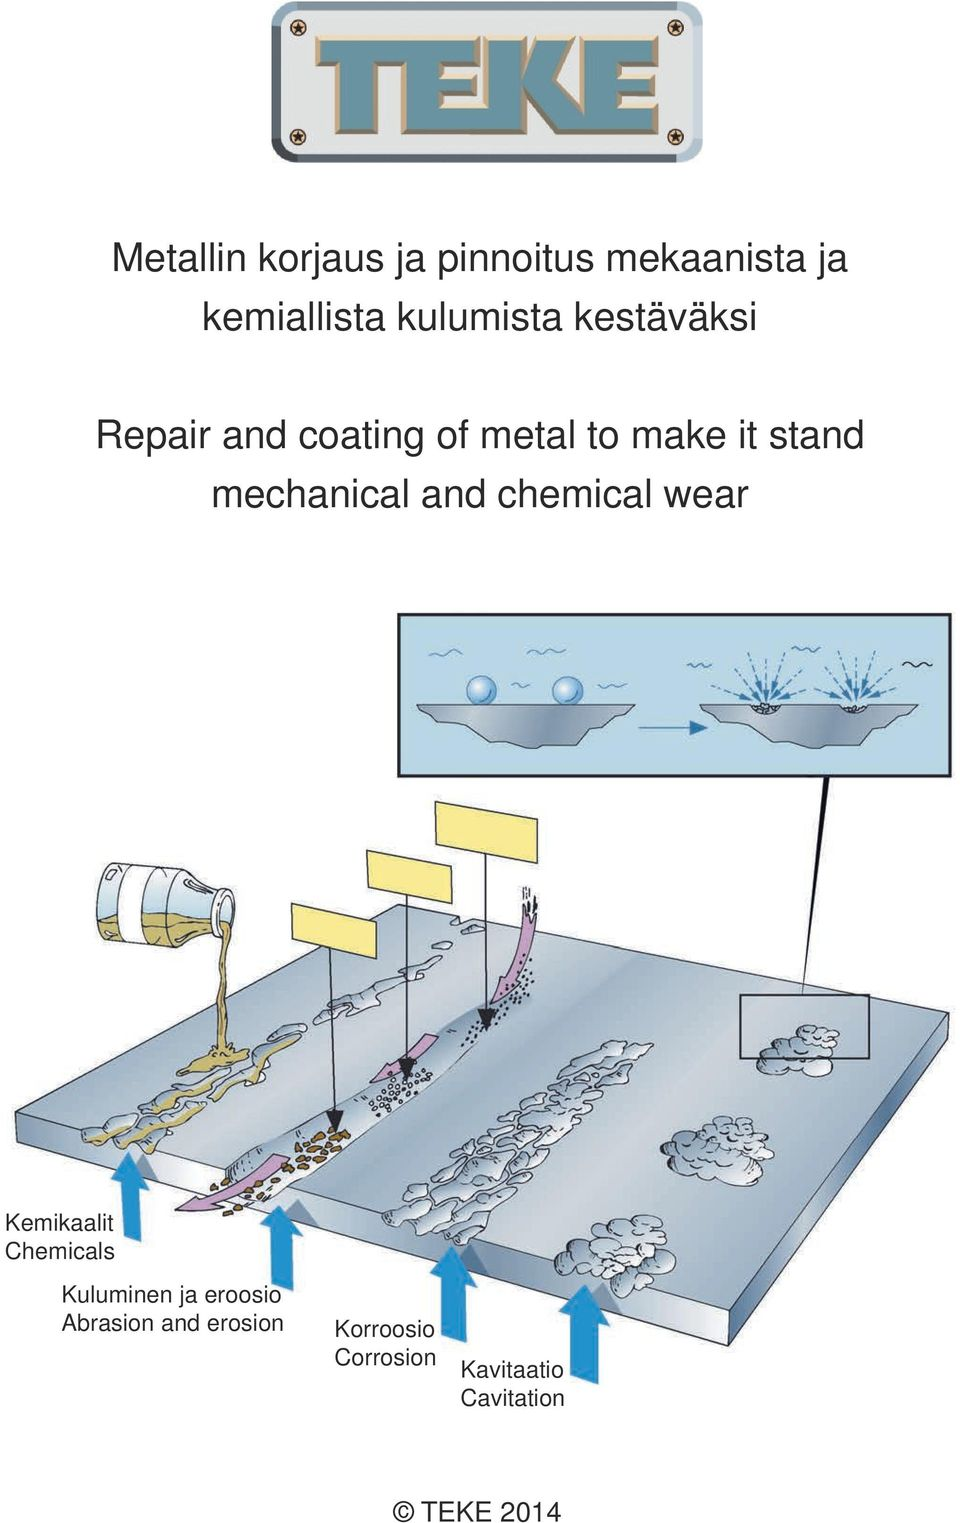 stand mechanical and chemical wear Kemikaalit Chemicals